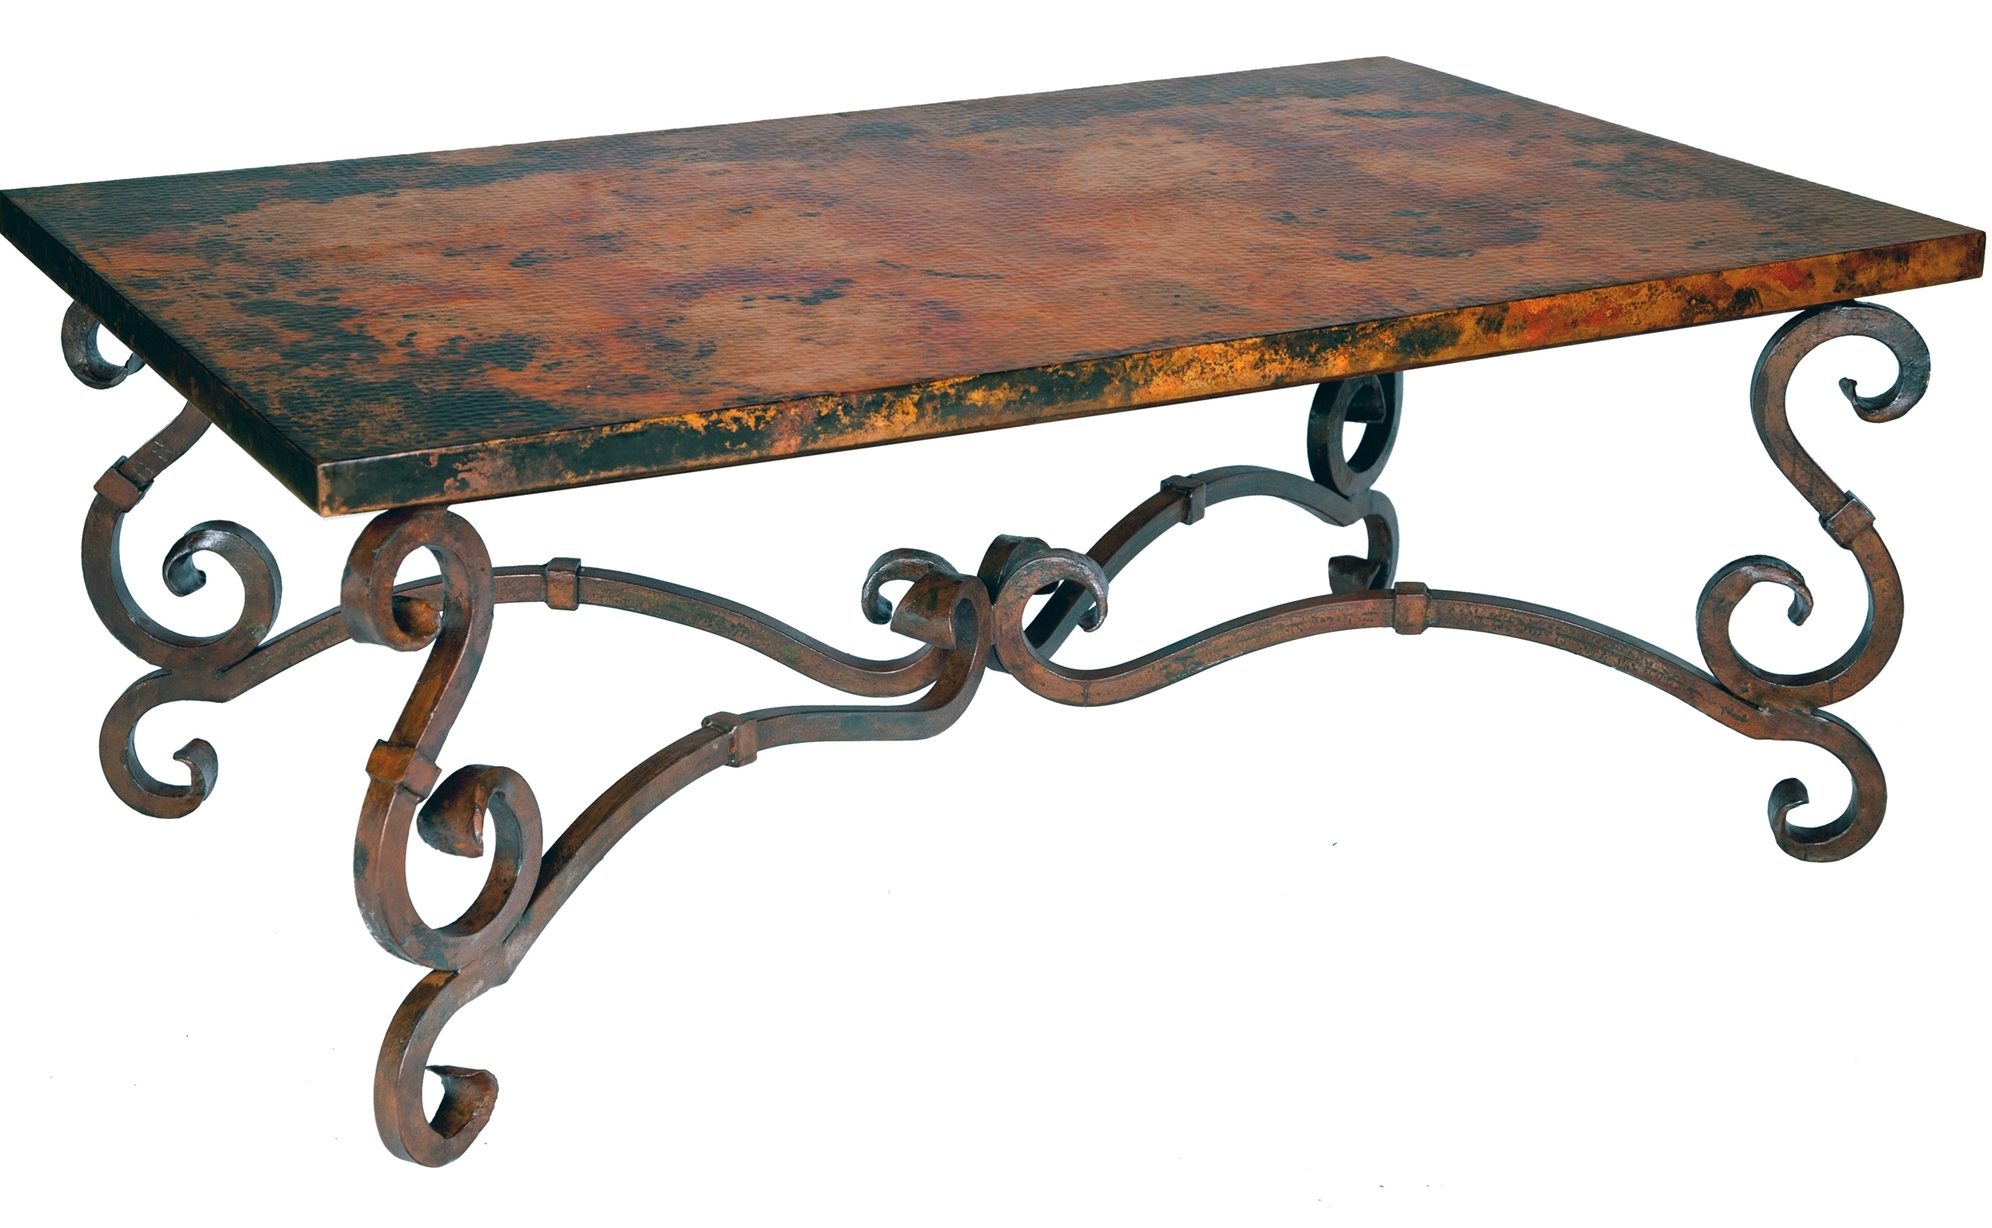 Stunning copper wrought iron furniture by prima for Iron furniture